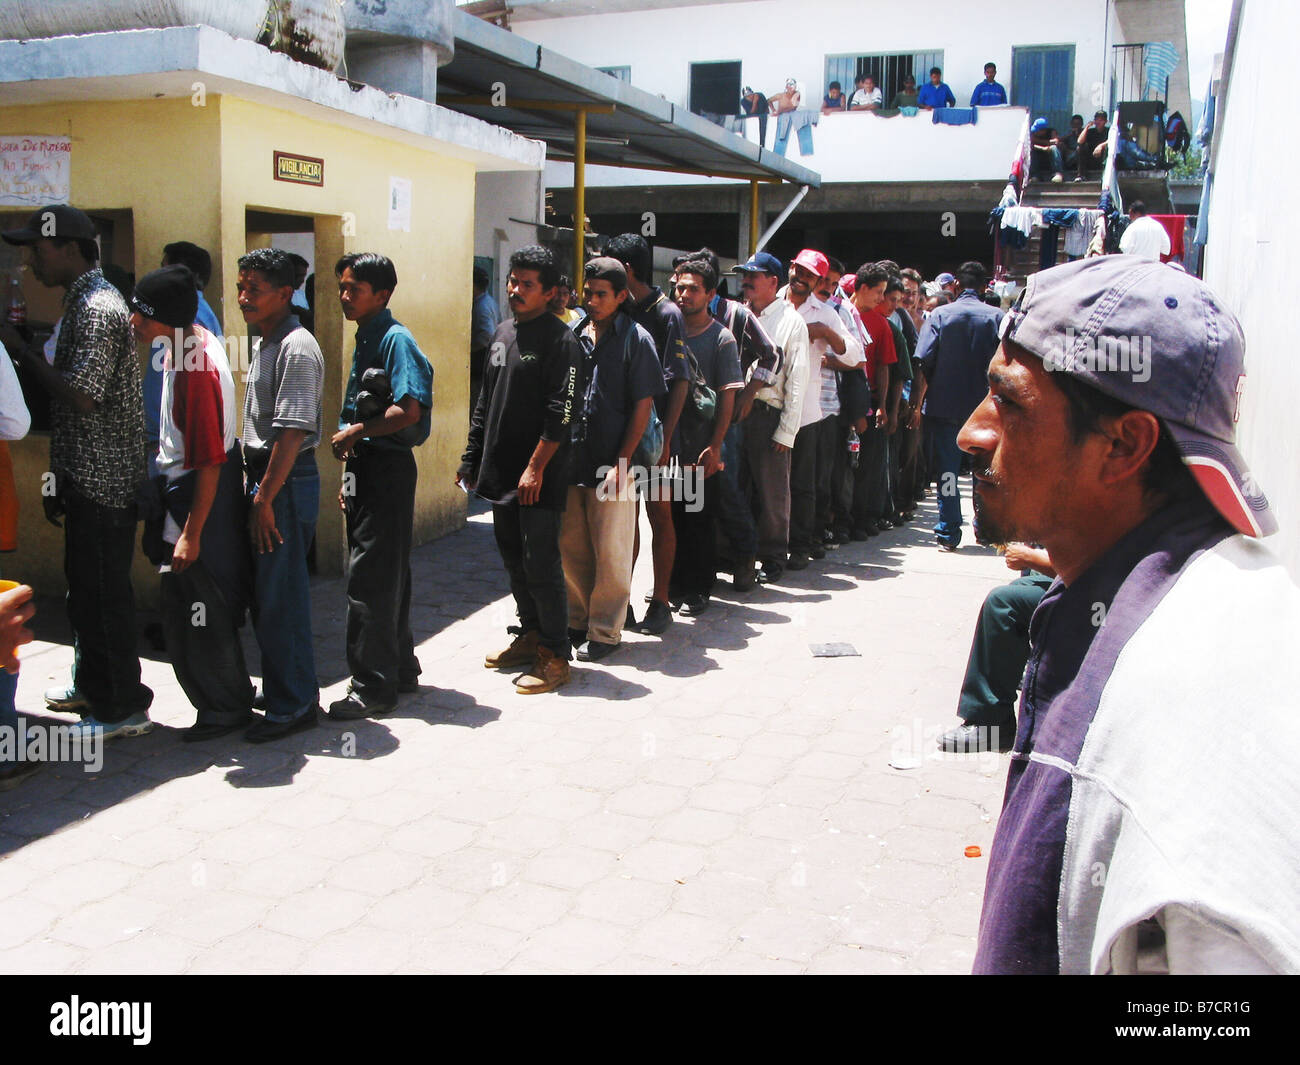 Illegal immigrants in a hostel making a break on their way to the U.S. and waiting for a warm meal, Mexico - Stock Image